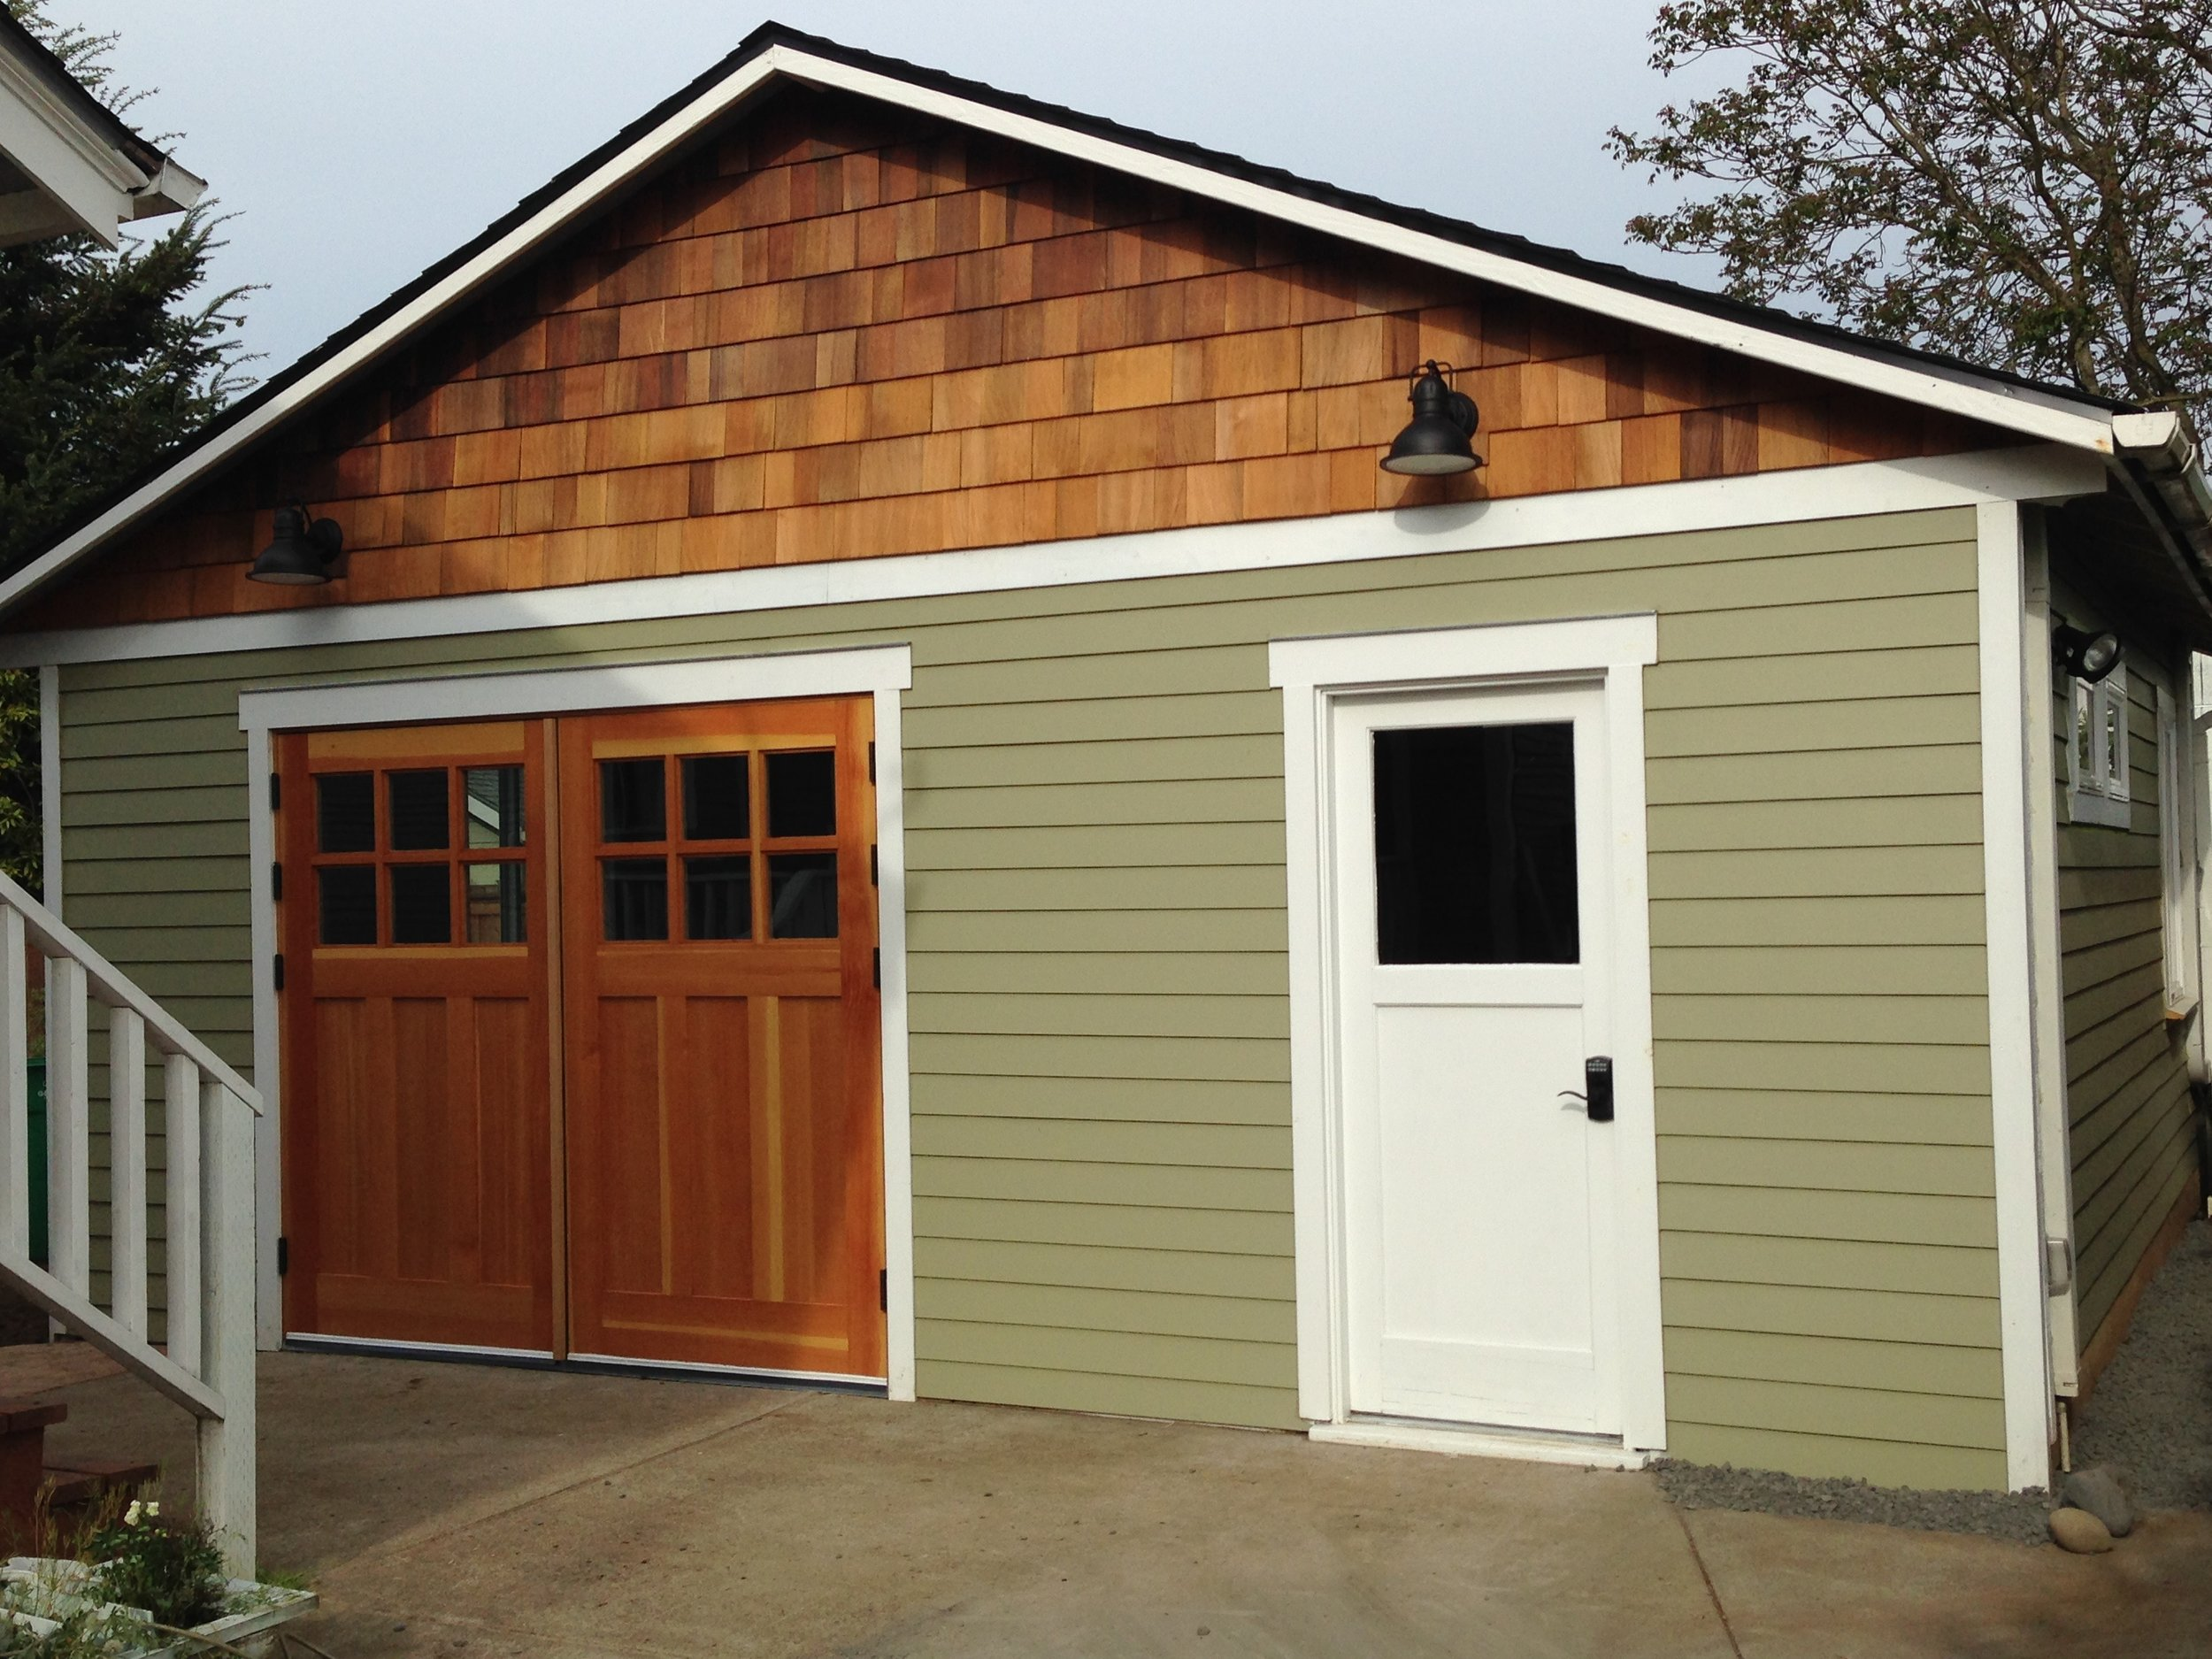 Garage Conversion Bathroom How To Save Money With A Garage Conversion Adu Building An Adu